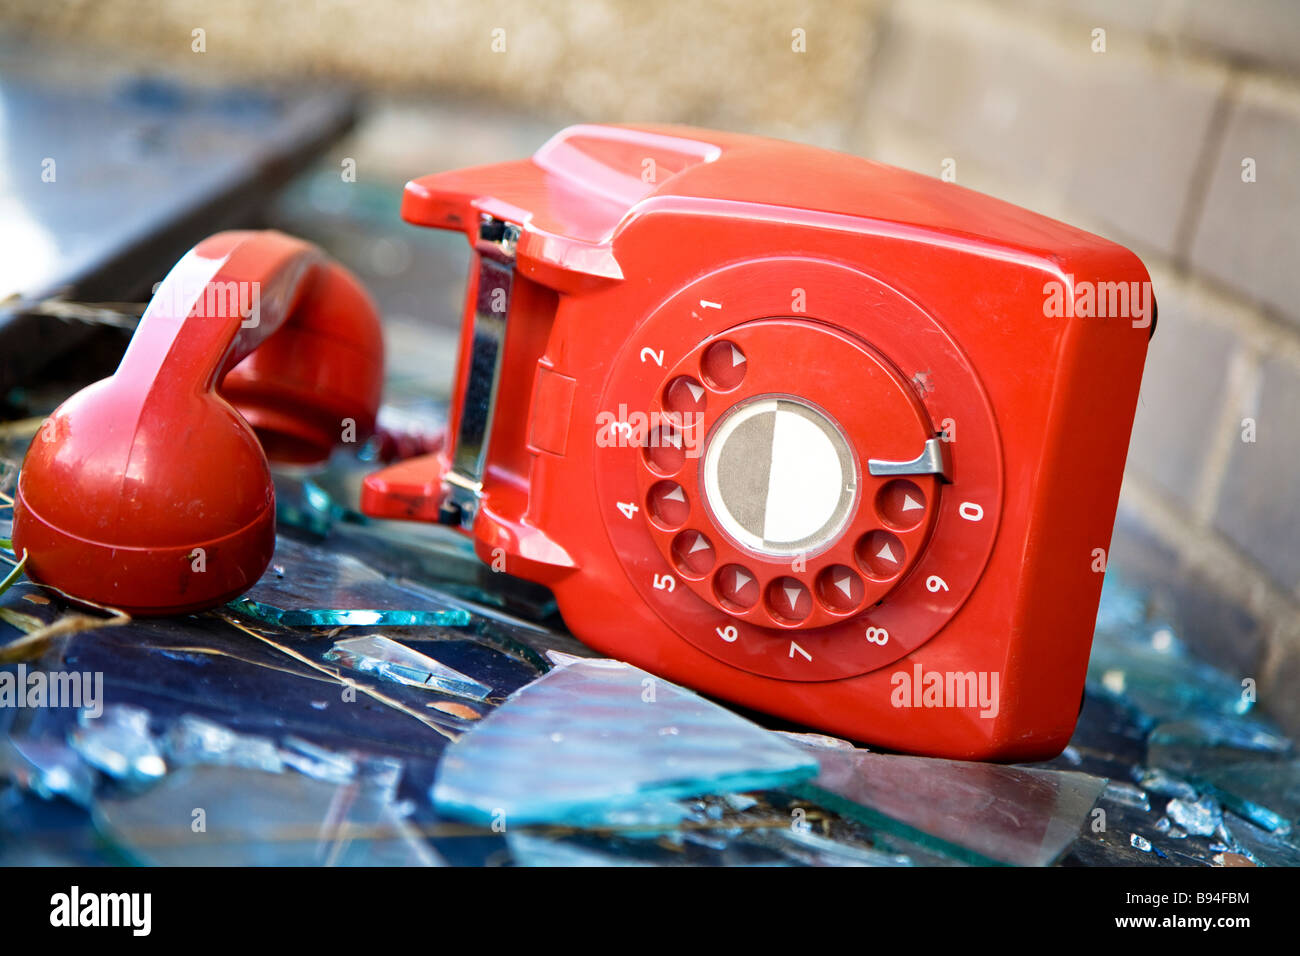 Old UK red phone abandoned in a derelict old building - Stock Image